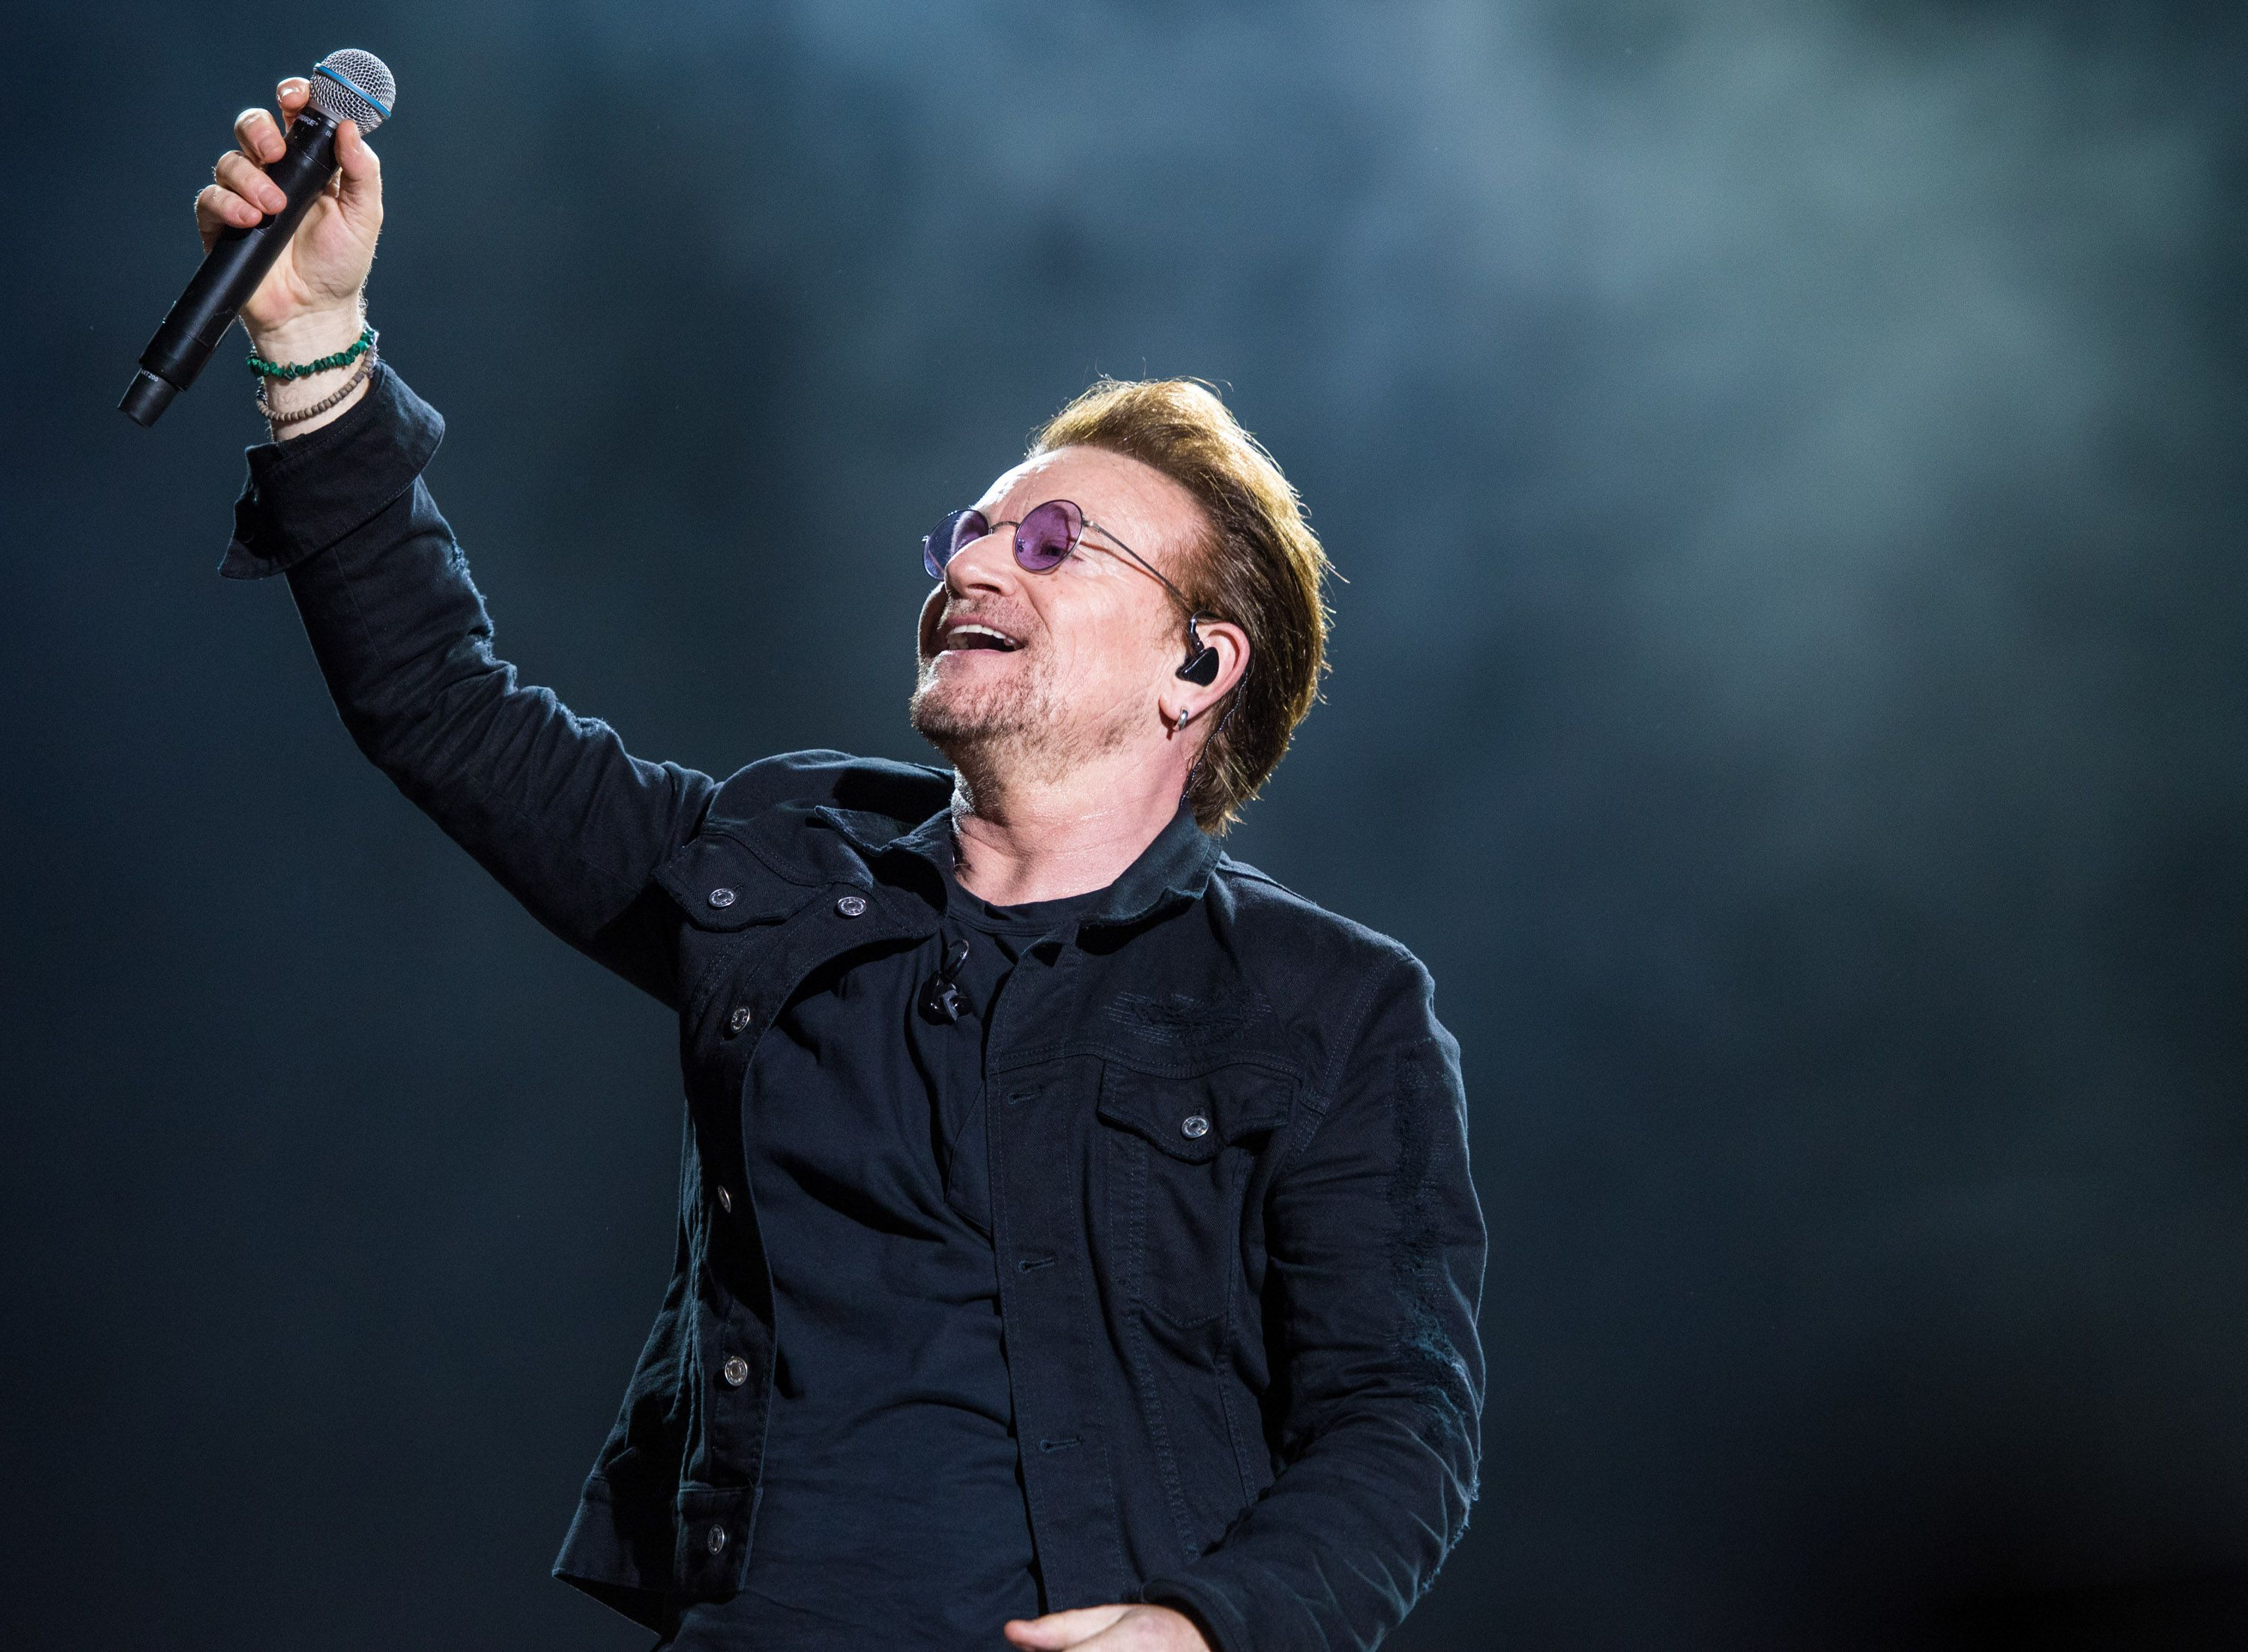 u2-were-going-away-now-berlin-concert-tour-end